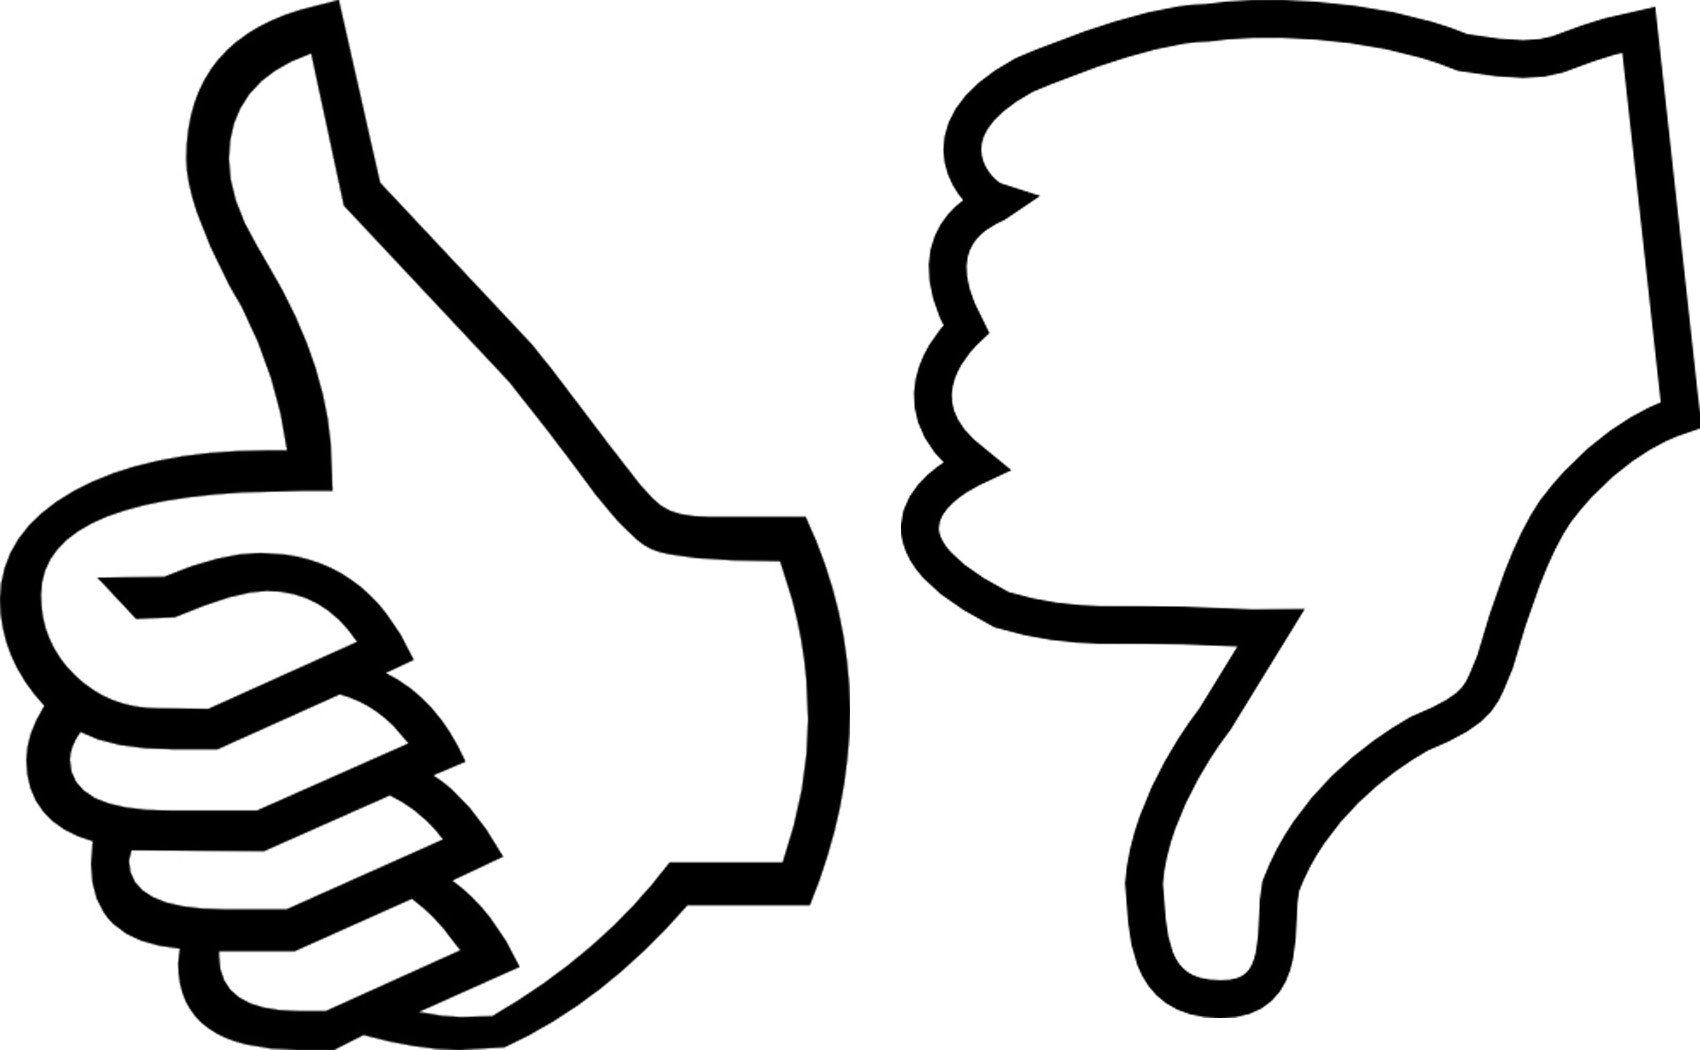 1700x1050 Thumbs Down Outline Clipart